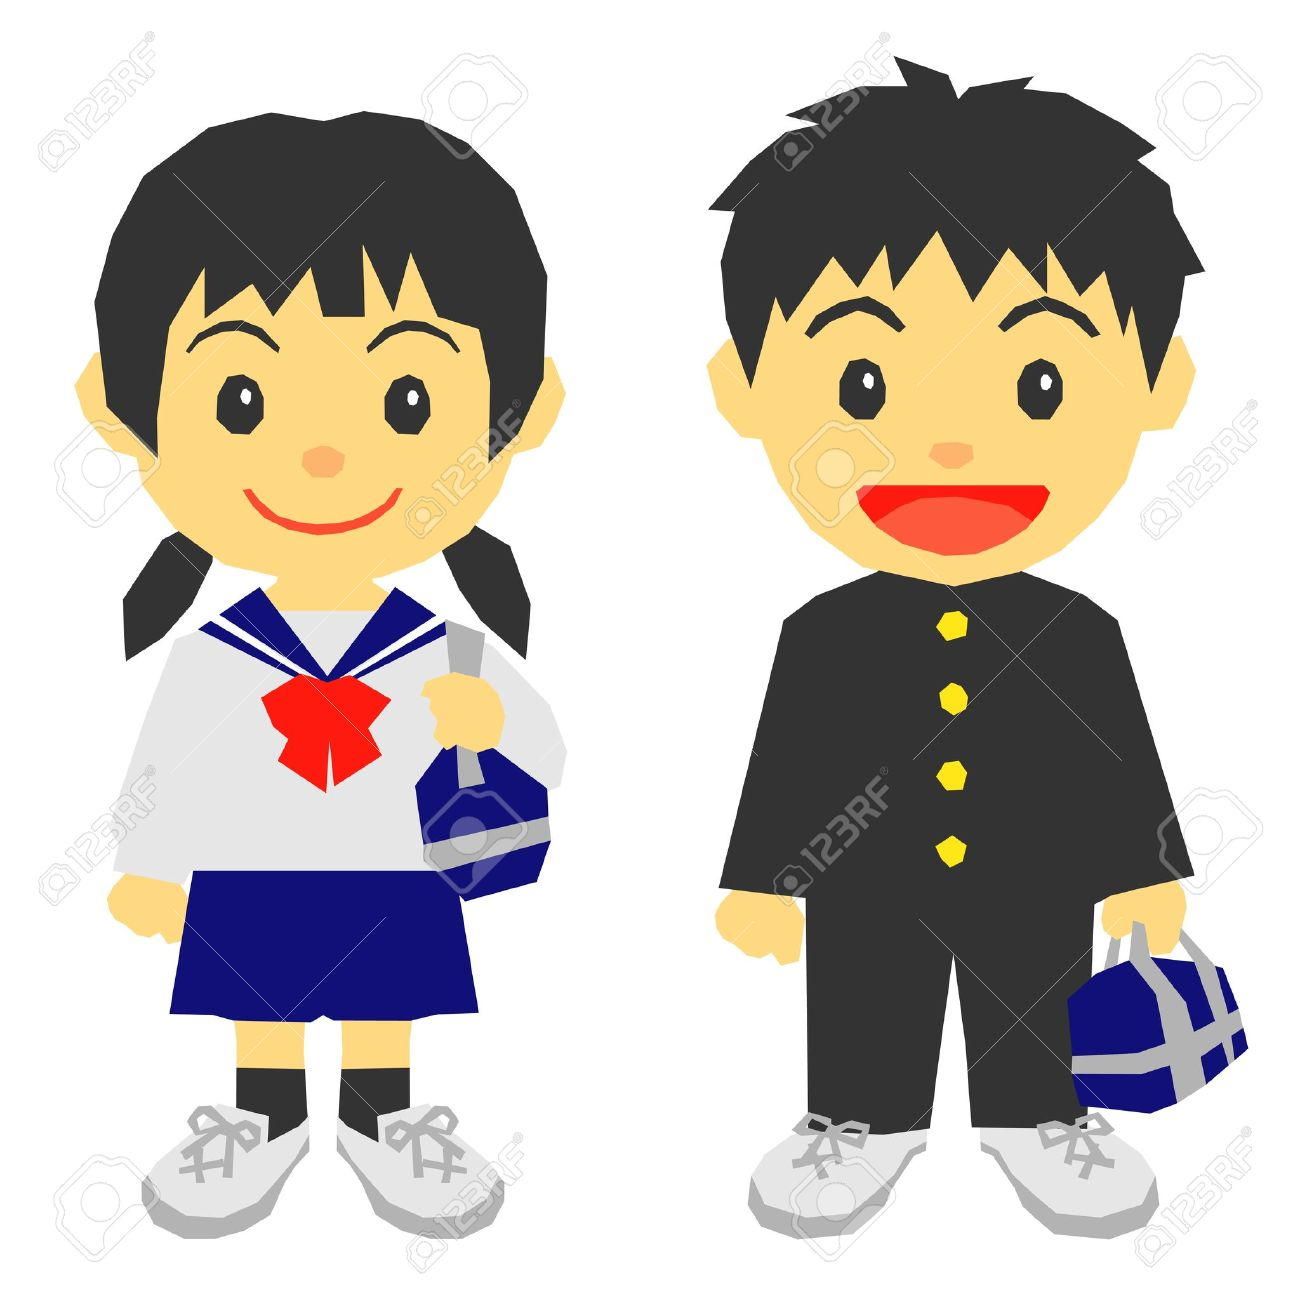 students, school uniform Stock .-students, school uniform Stock .-16